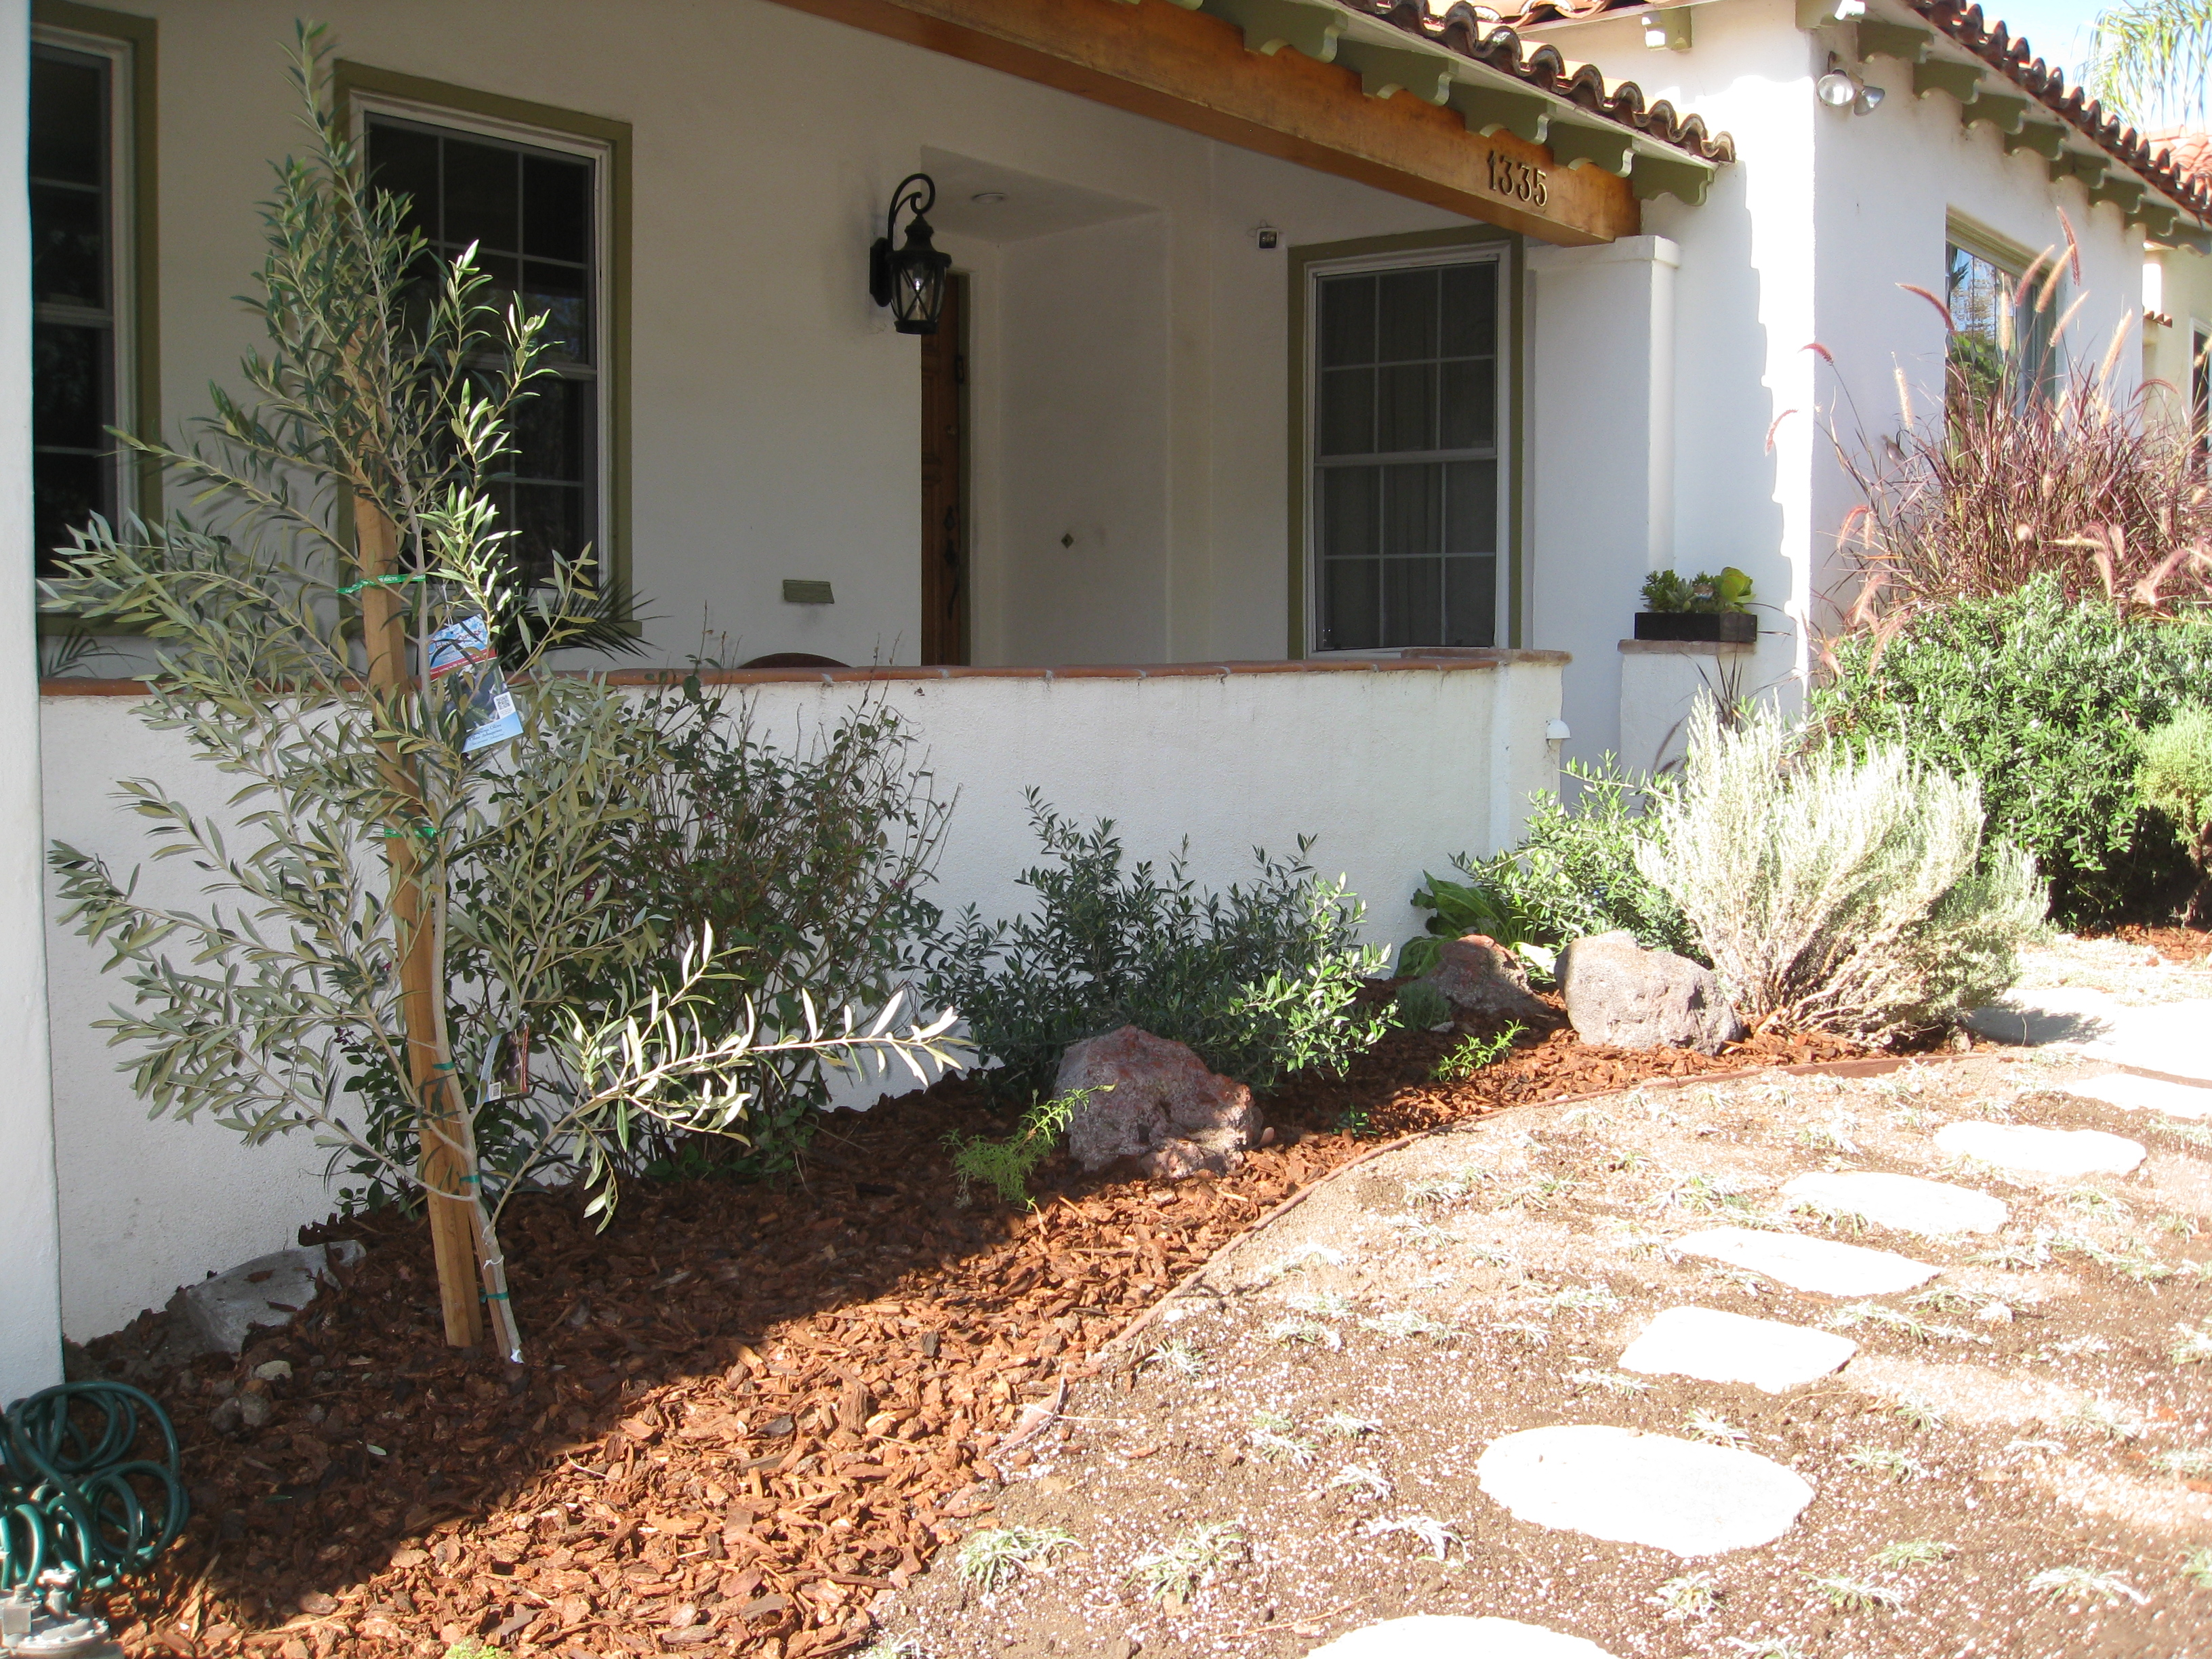 A new Spanish olive tree greets the homeowners as they walk to the front door.